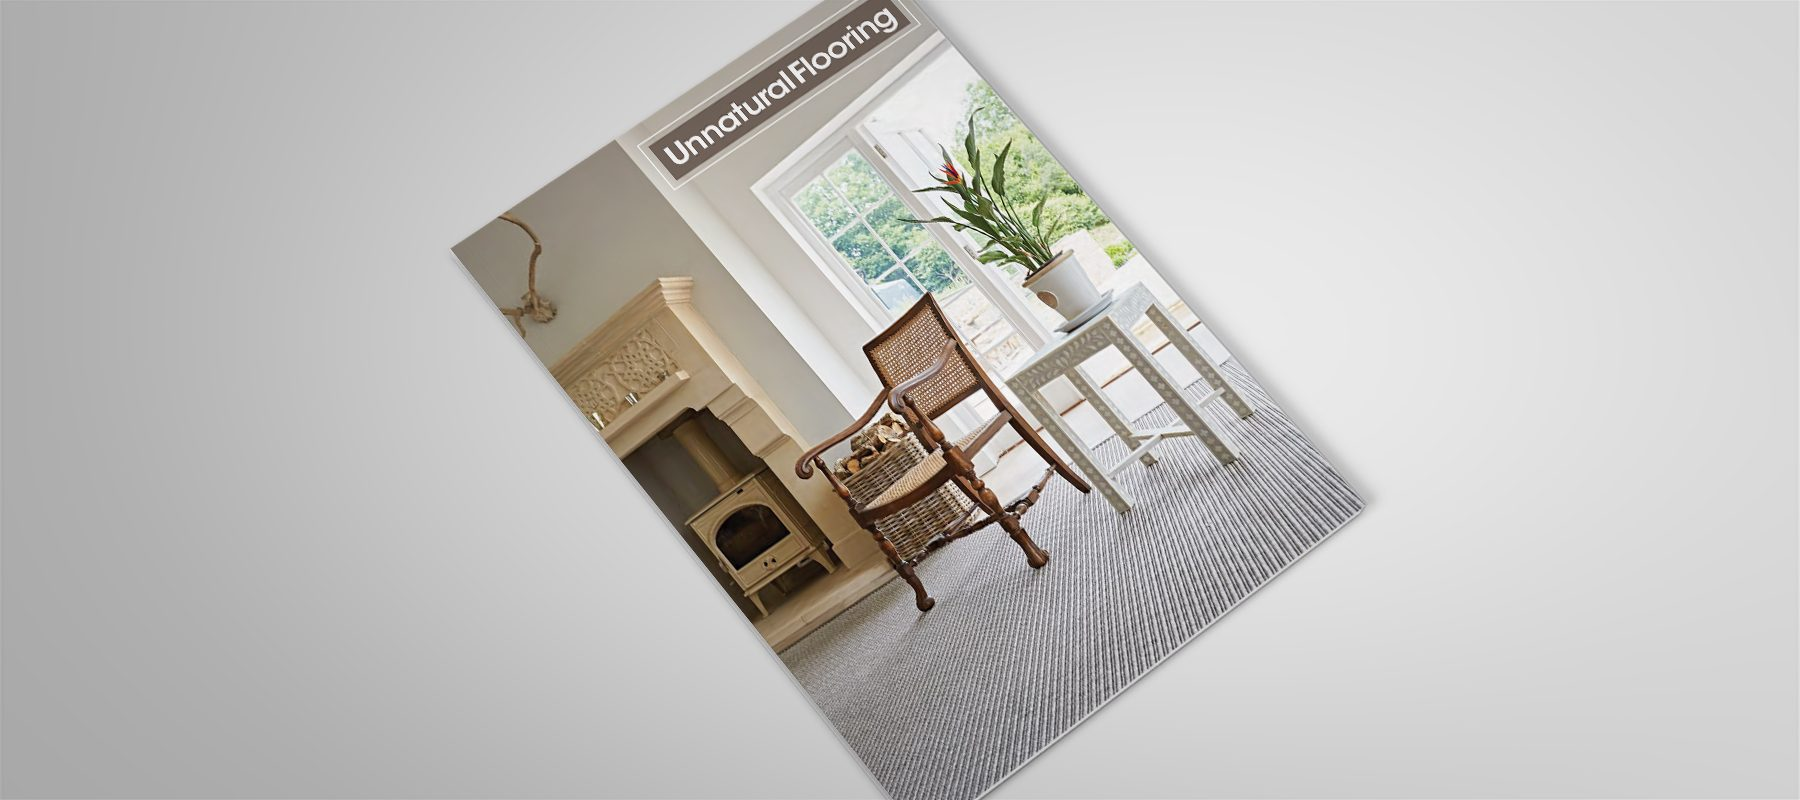 New product brochure for Unnatural Flooring